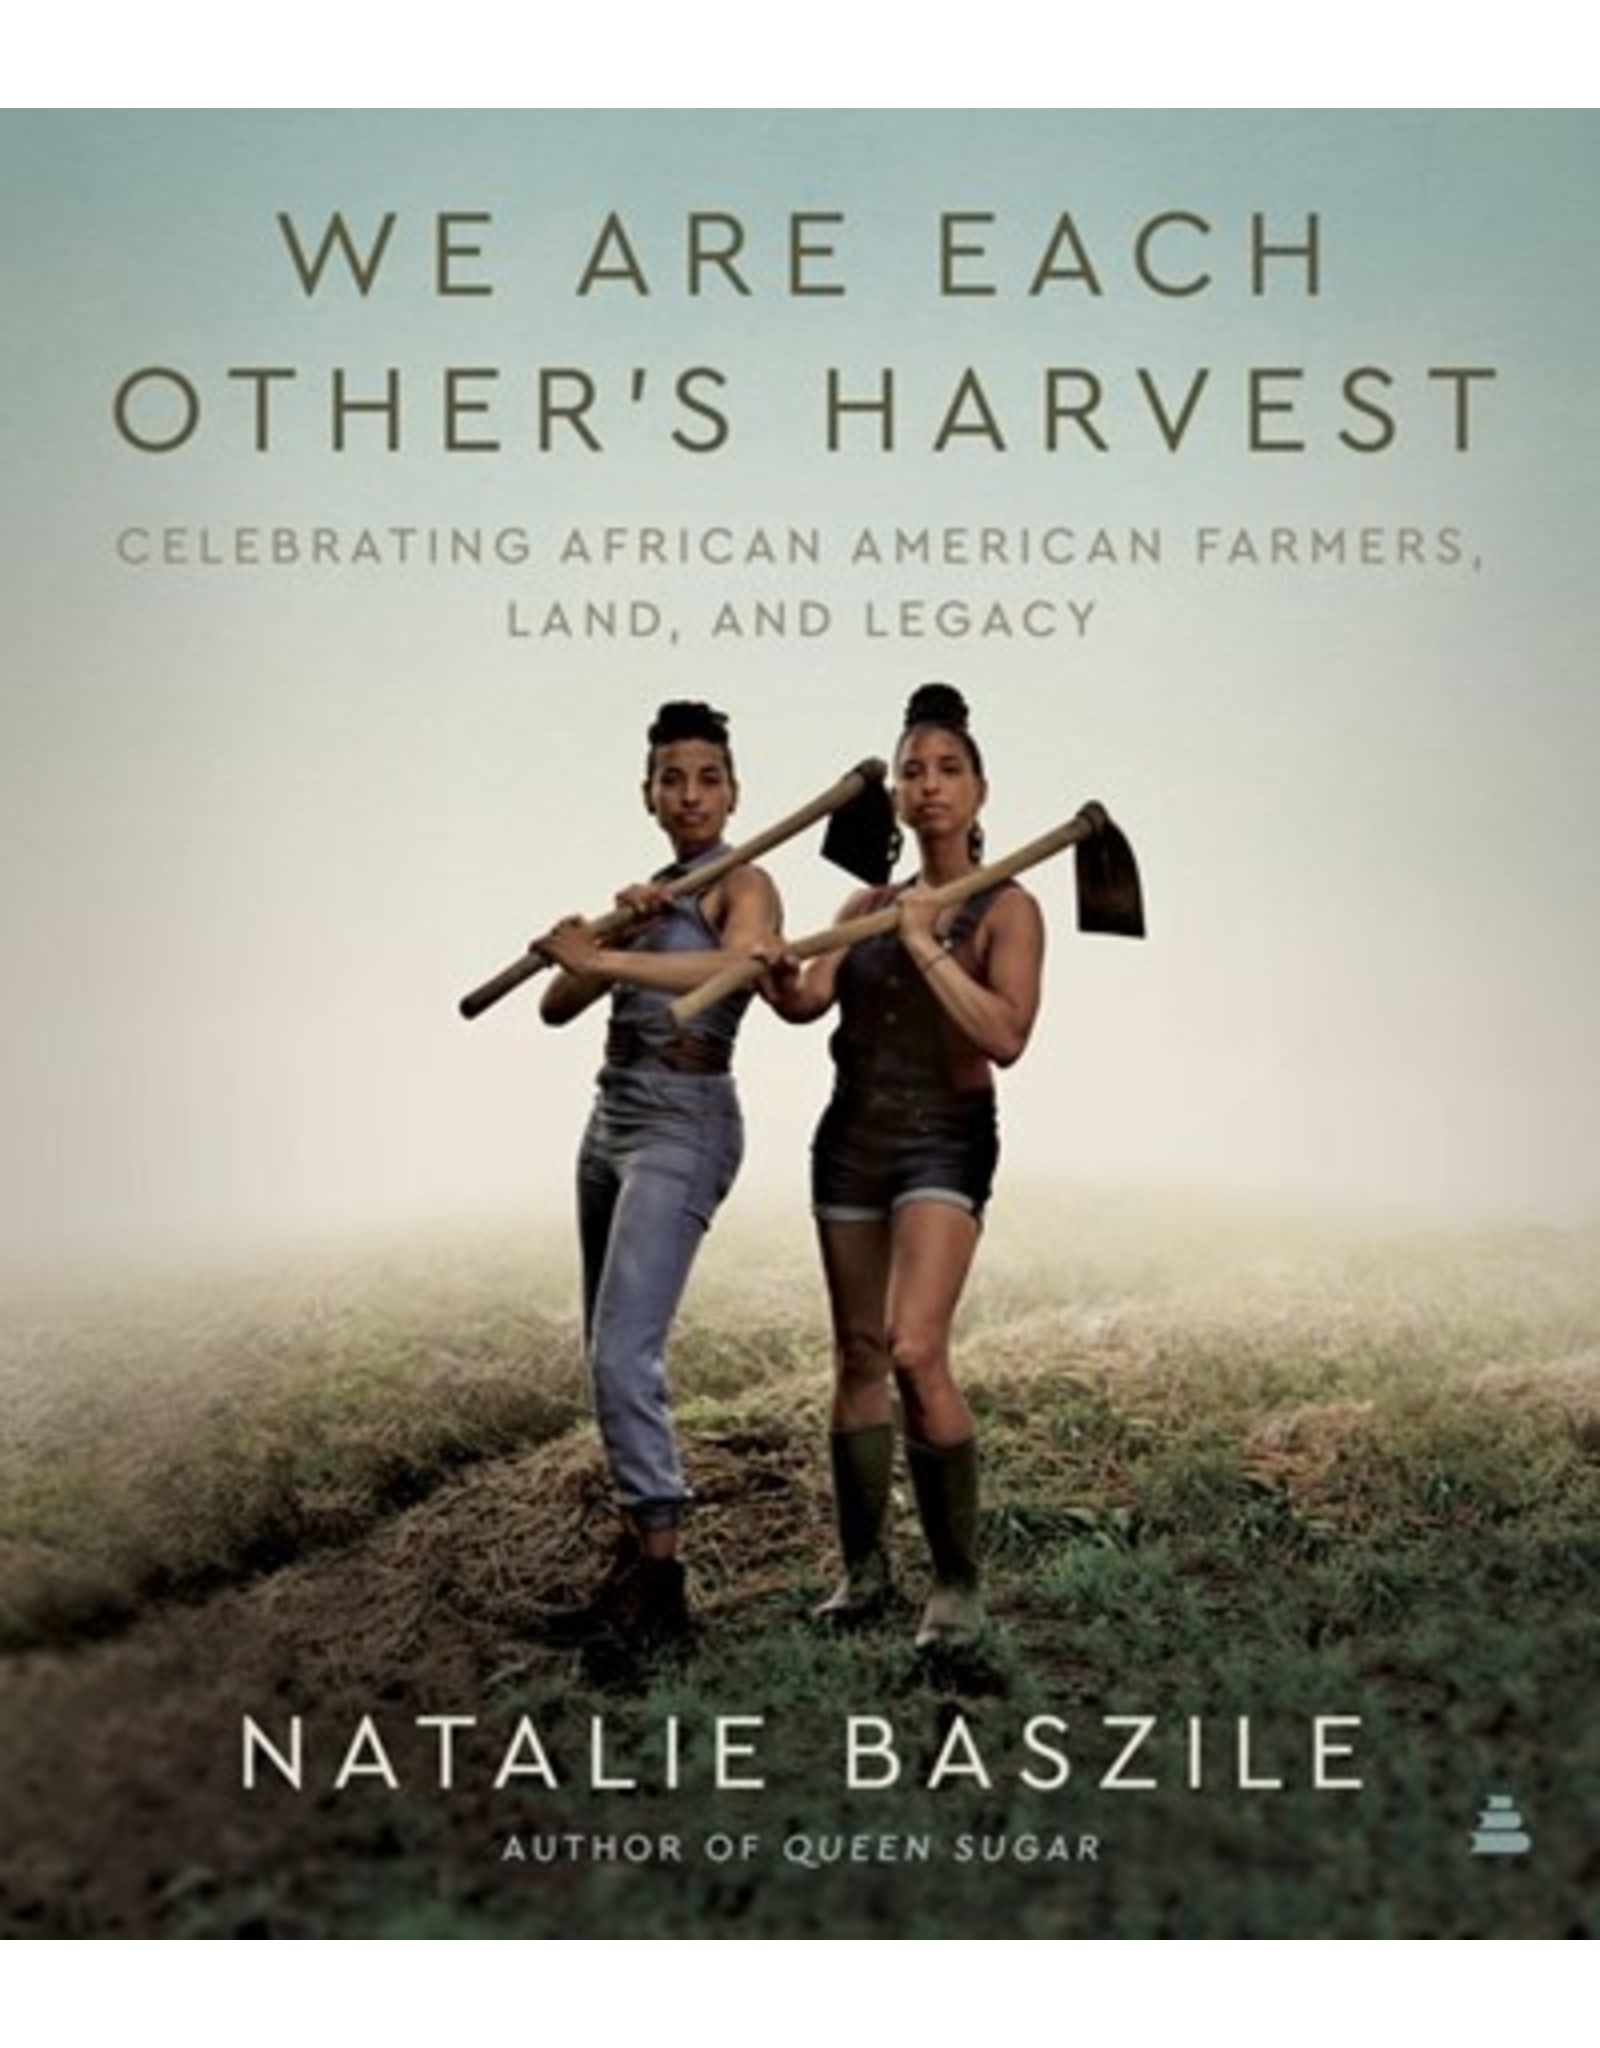 Books We Are Each Other's Harvest : Celebrating African American Farmers, Land, and Legacy  by Natalie Baszile